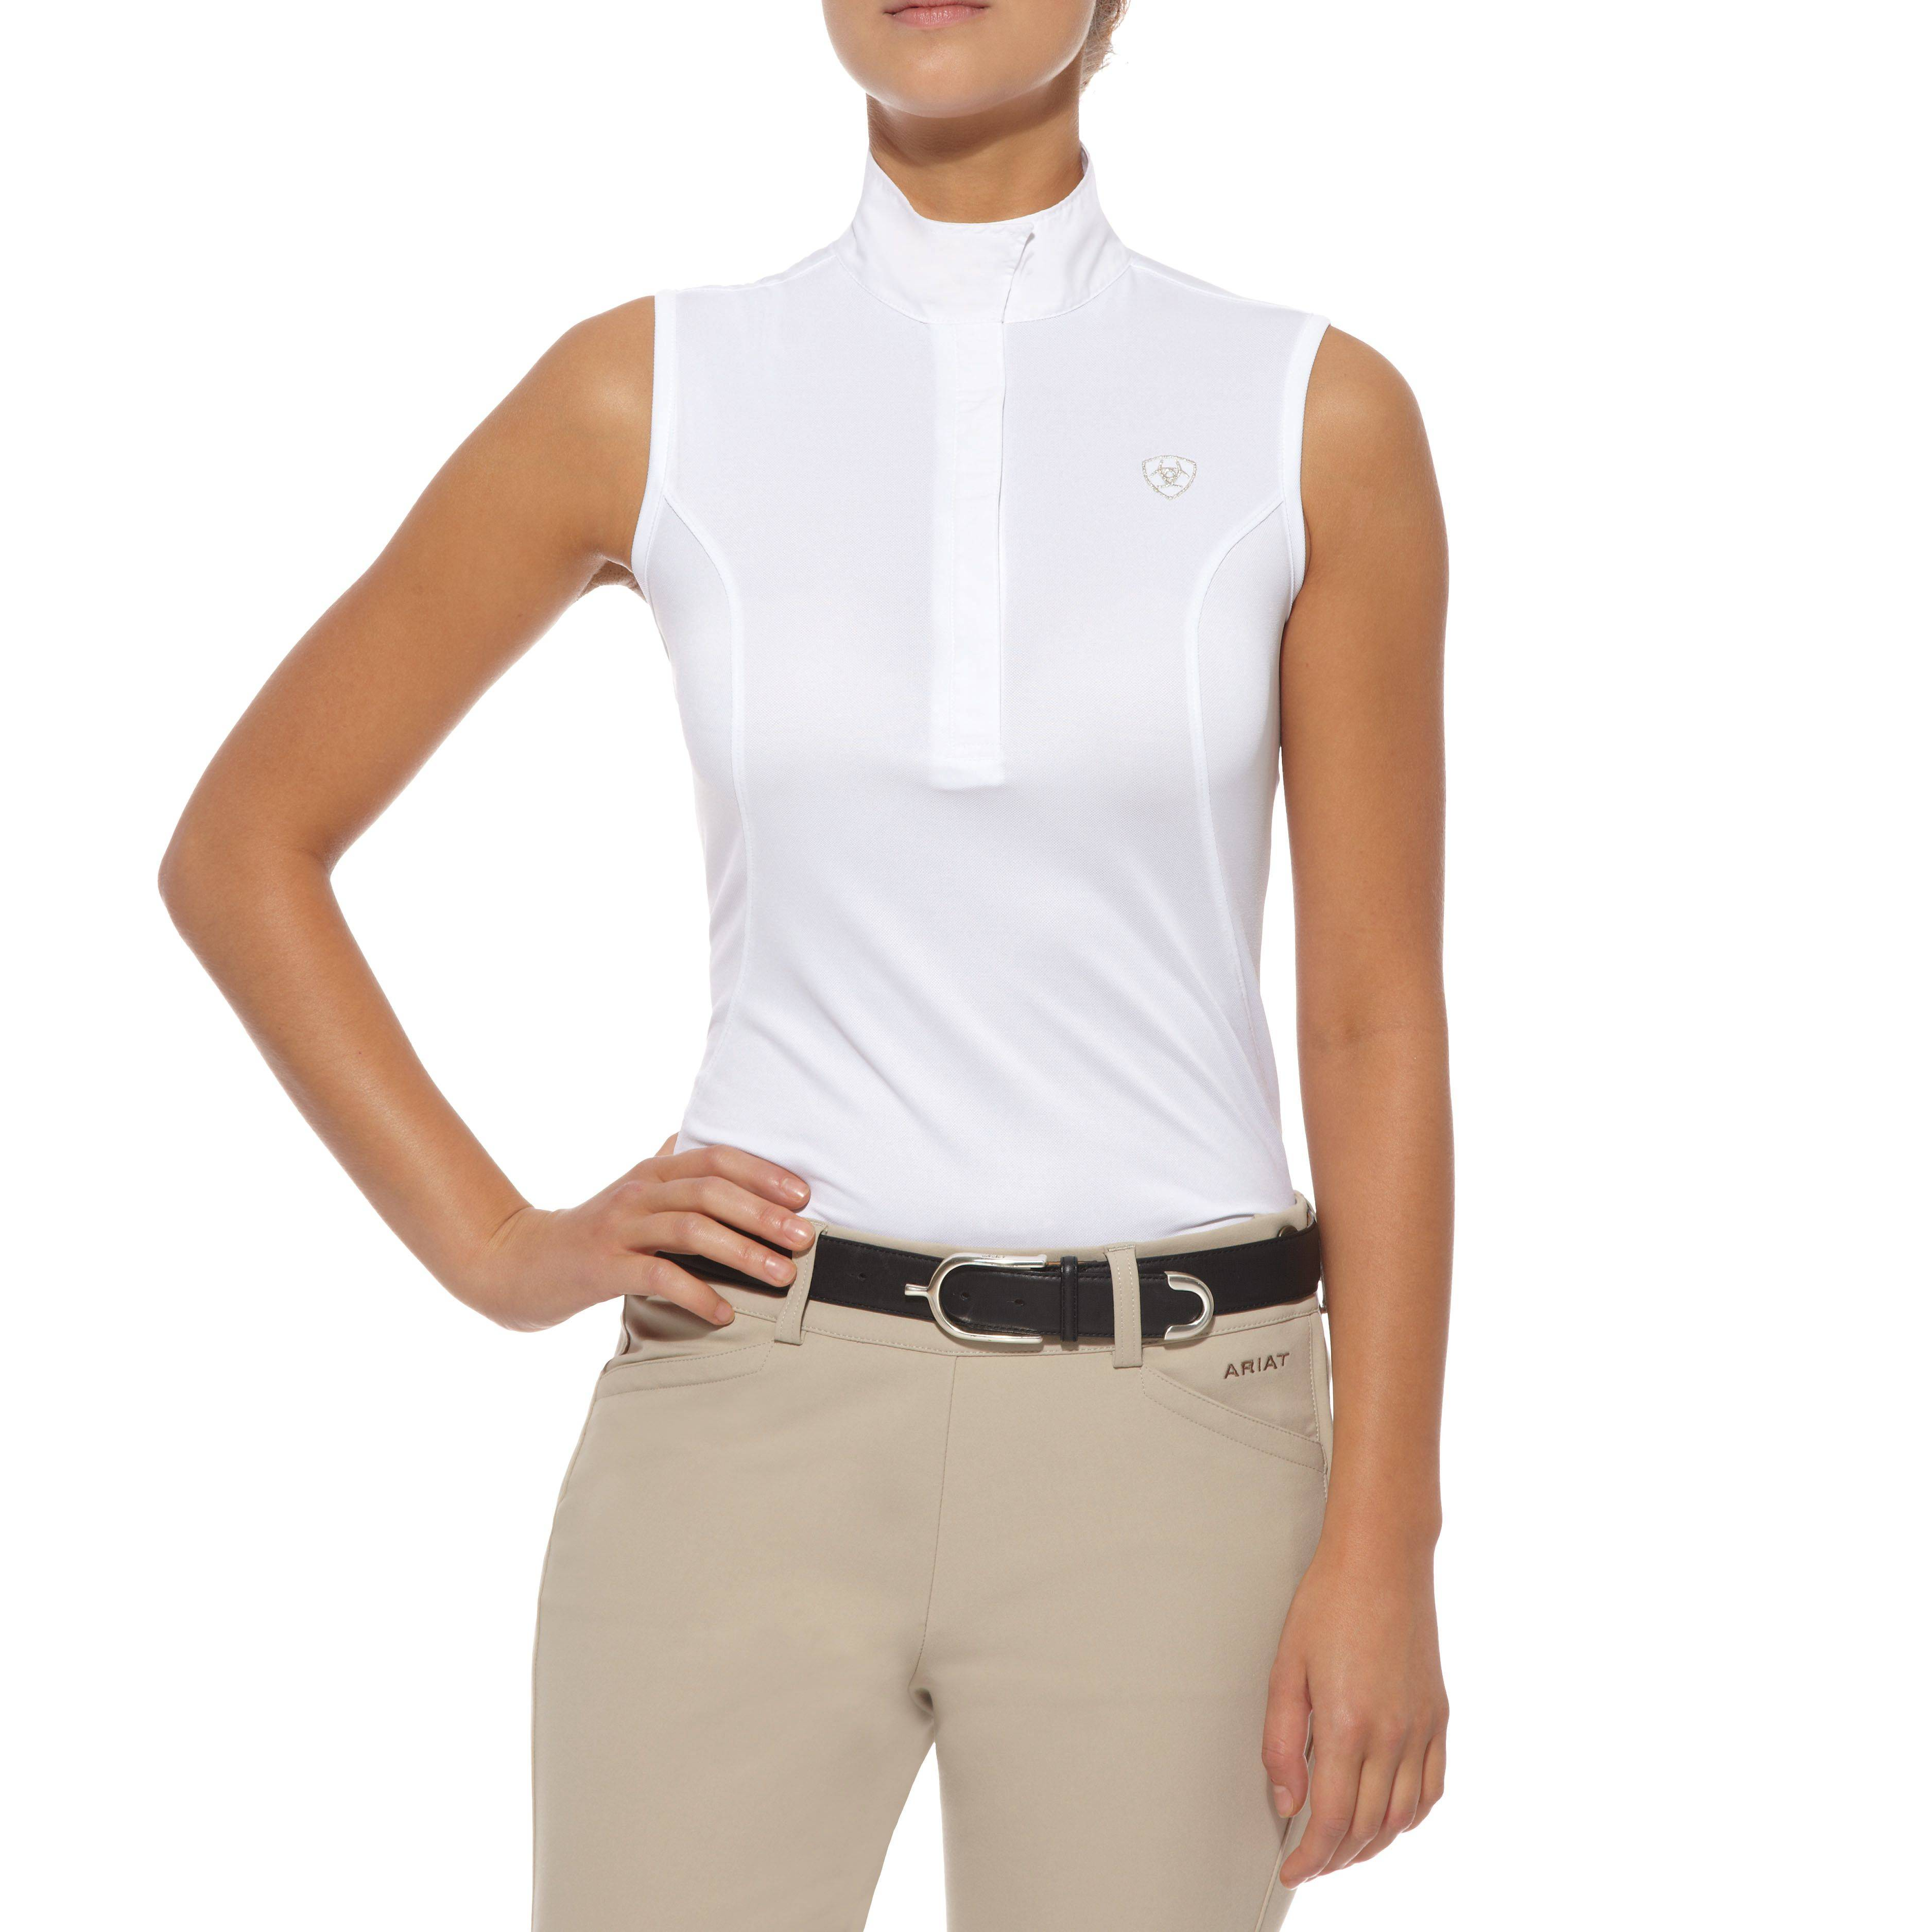 Ariat Ladies 2012 Aptos Sleeveless Show Top